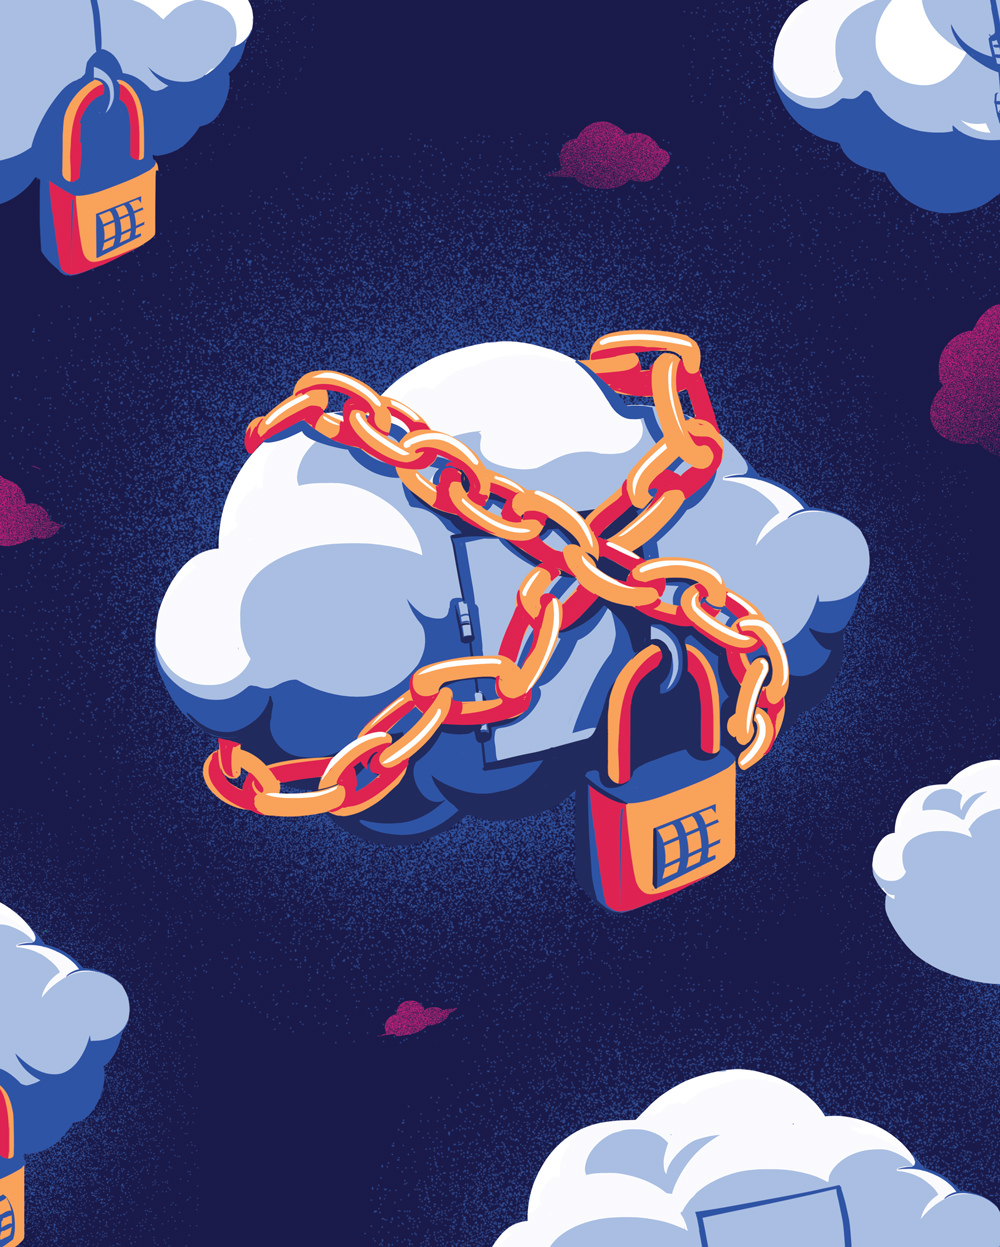 Unlock the Cloud - EC 269